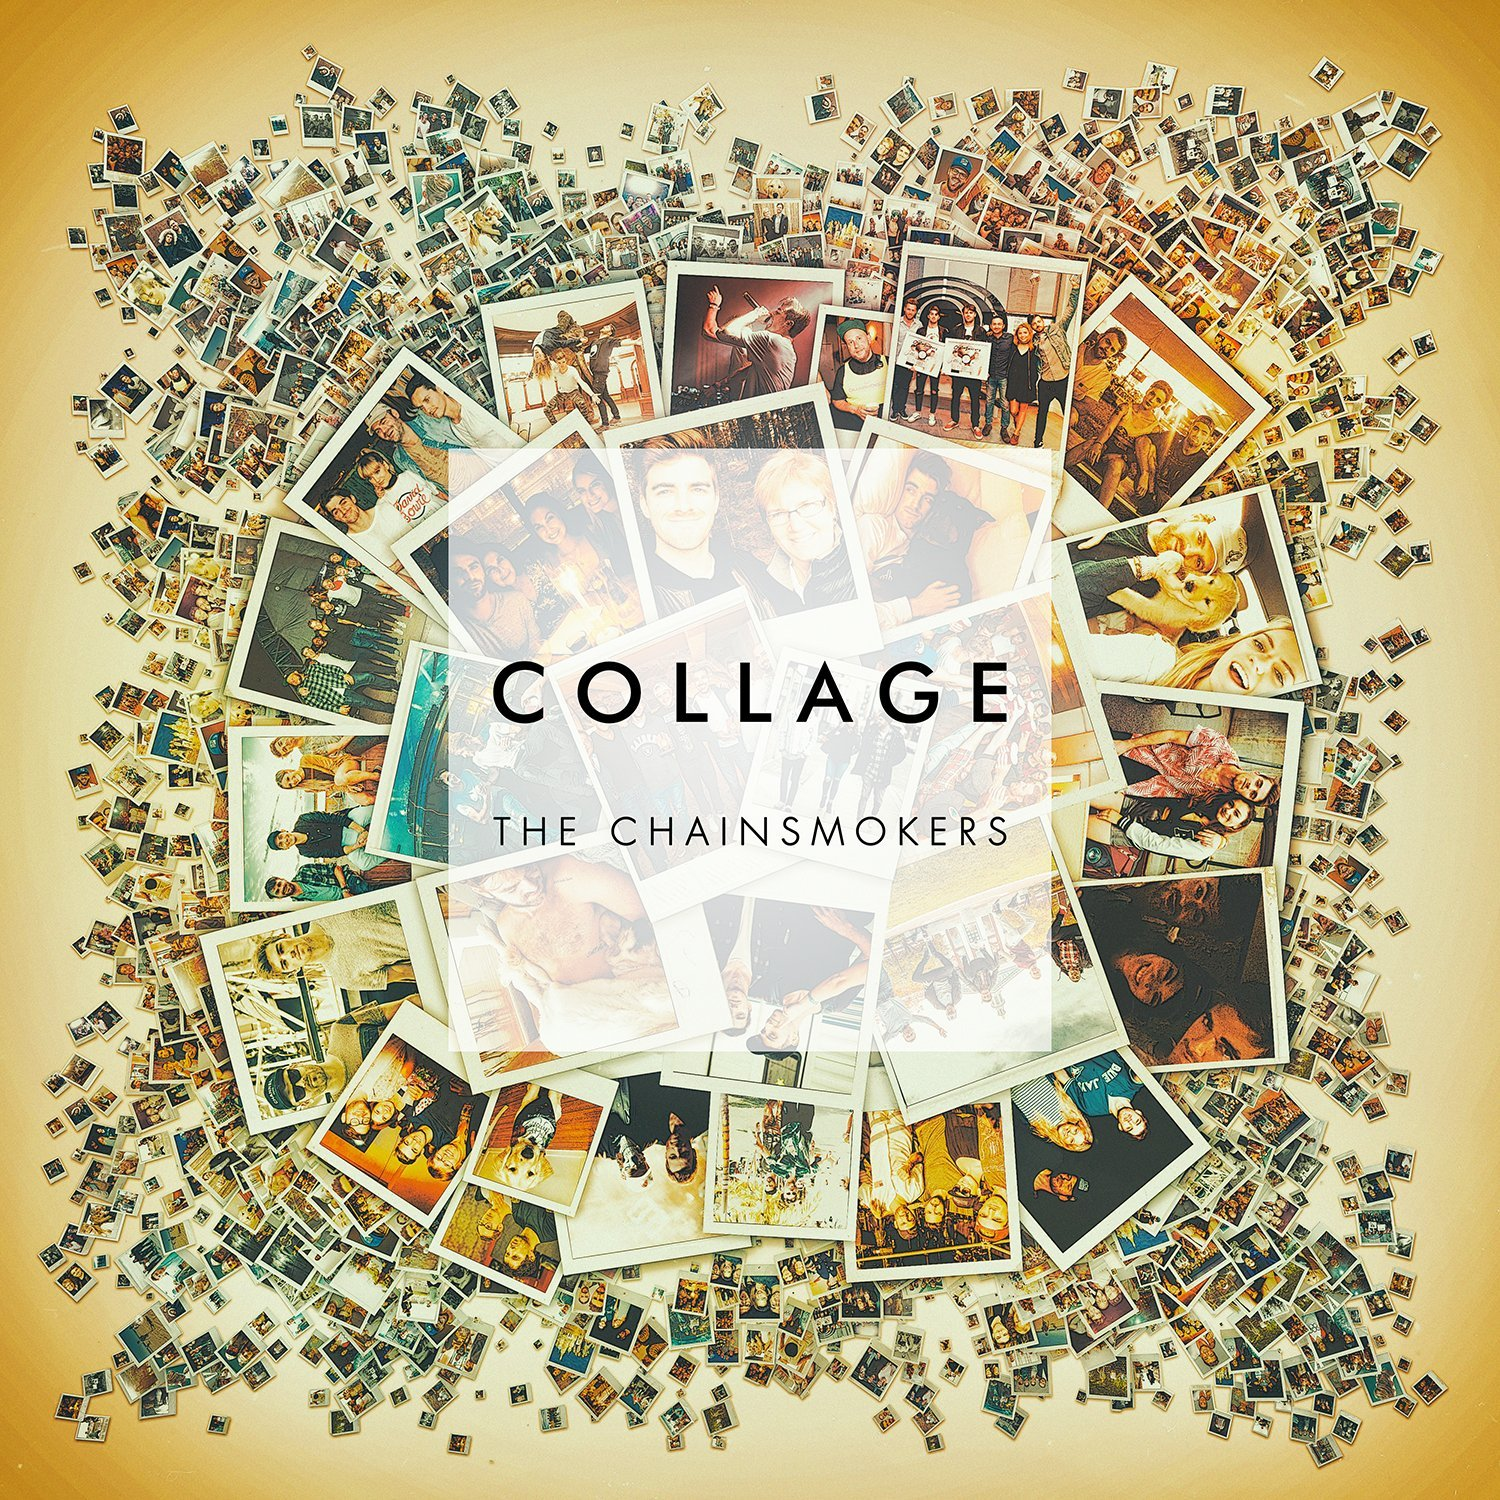 The Chainsmokers Jam-pack 'Collage' EP with Hits